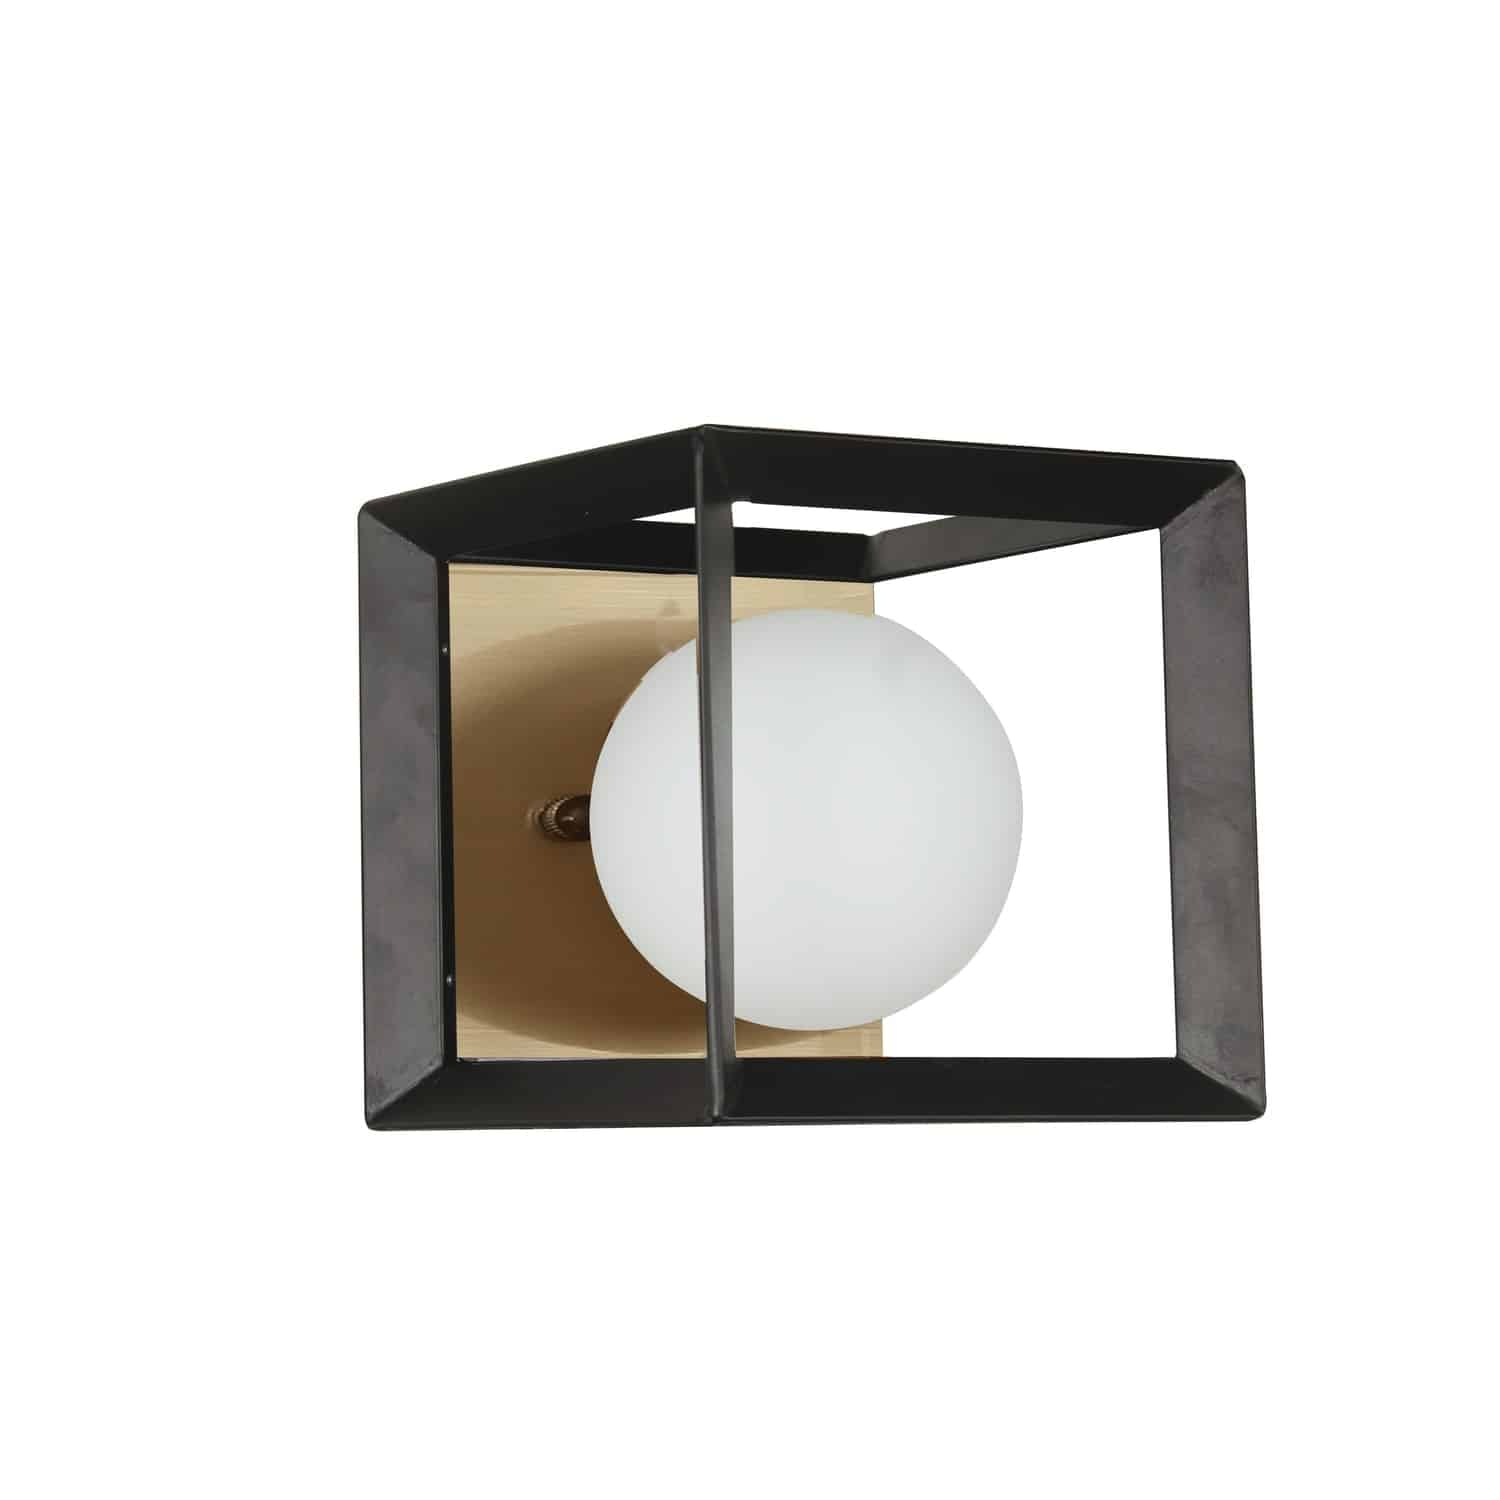 1 Light Halogen Wall Sconce Black and Aged Brass Finish